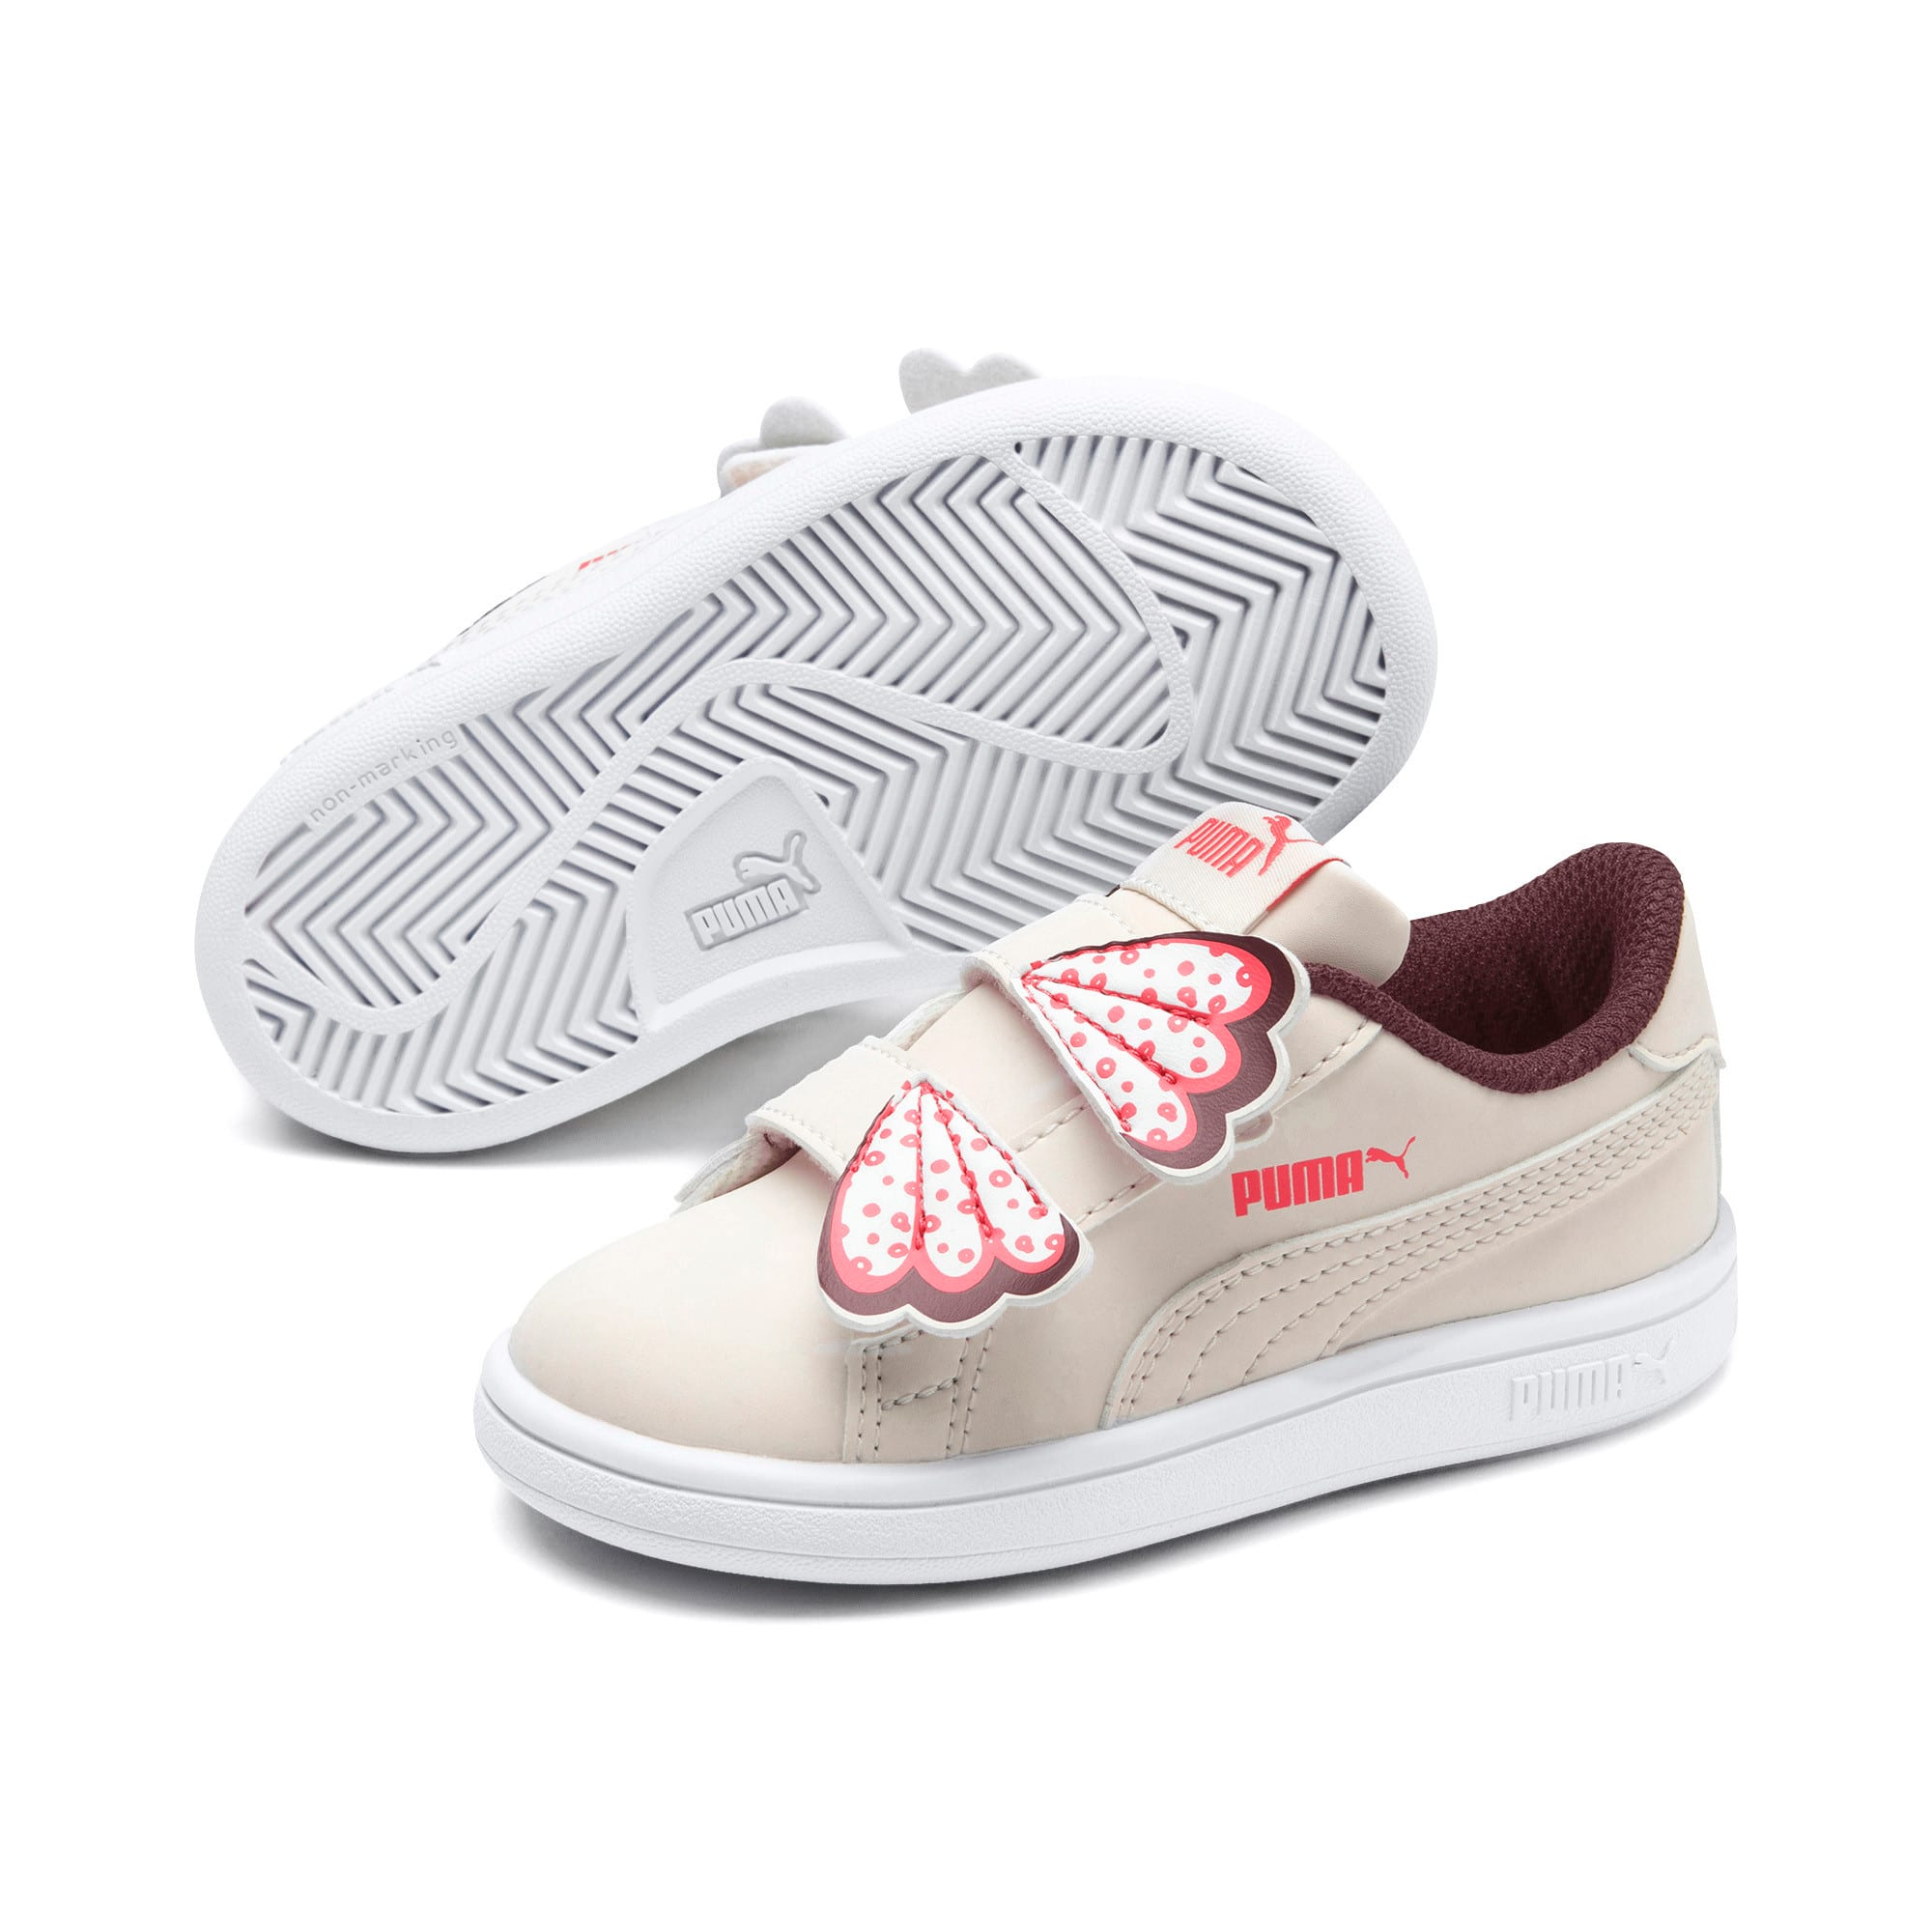 Thumbnail 2 of PUMA Smash v2 Butterfly Baby Girls' Trainers, Pastel Parchment-Vineyard, medium